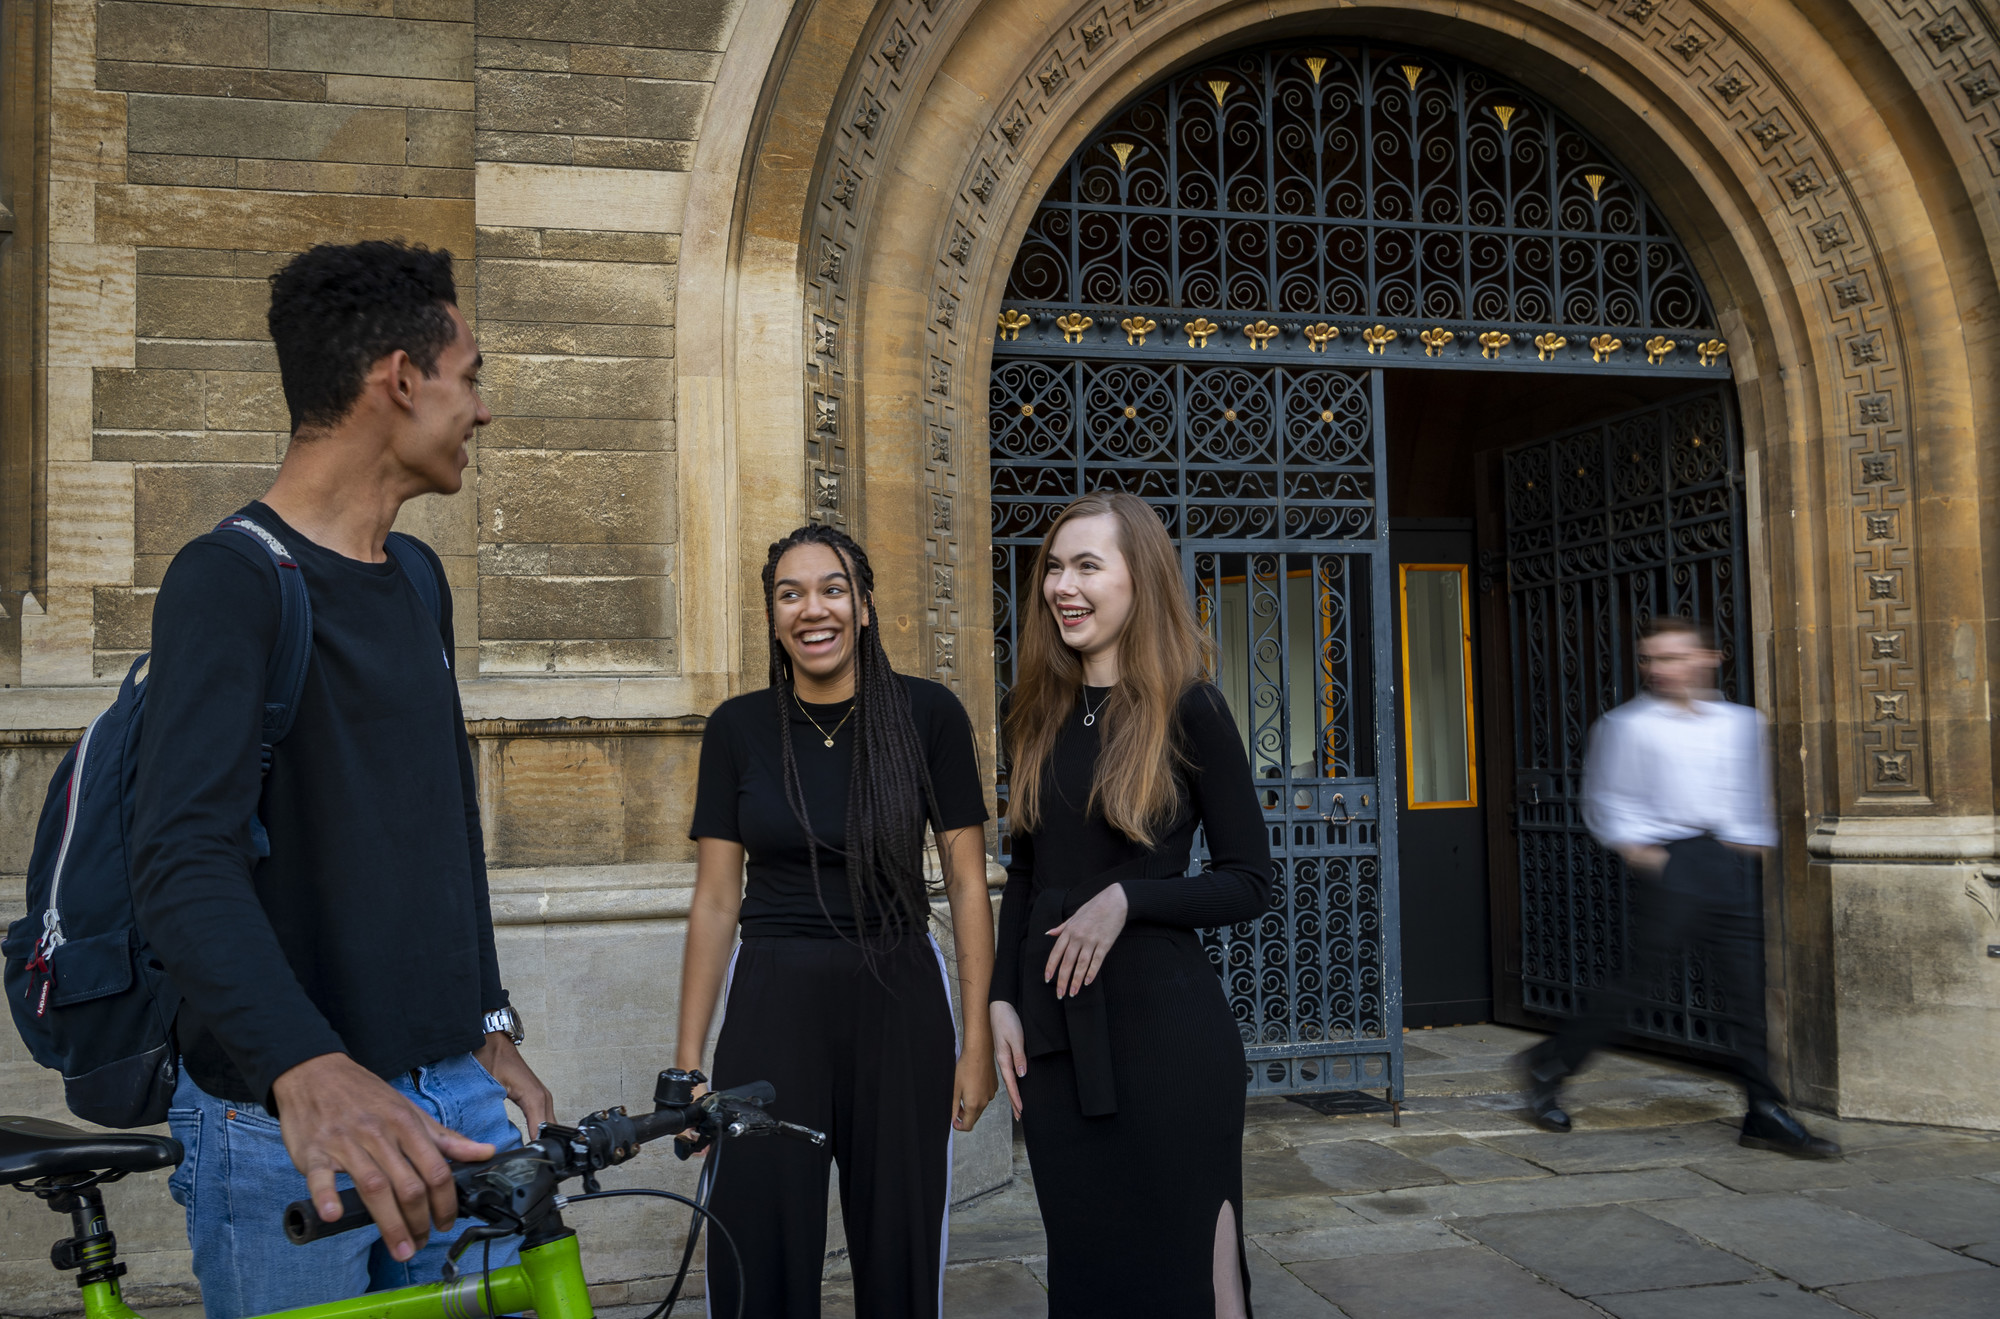 Students talking outside the Great Gate